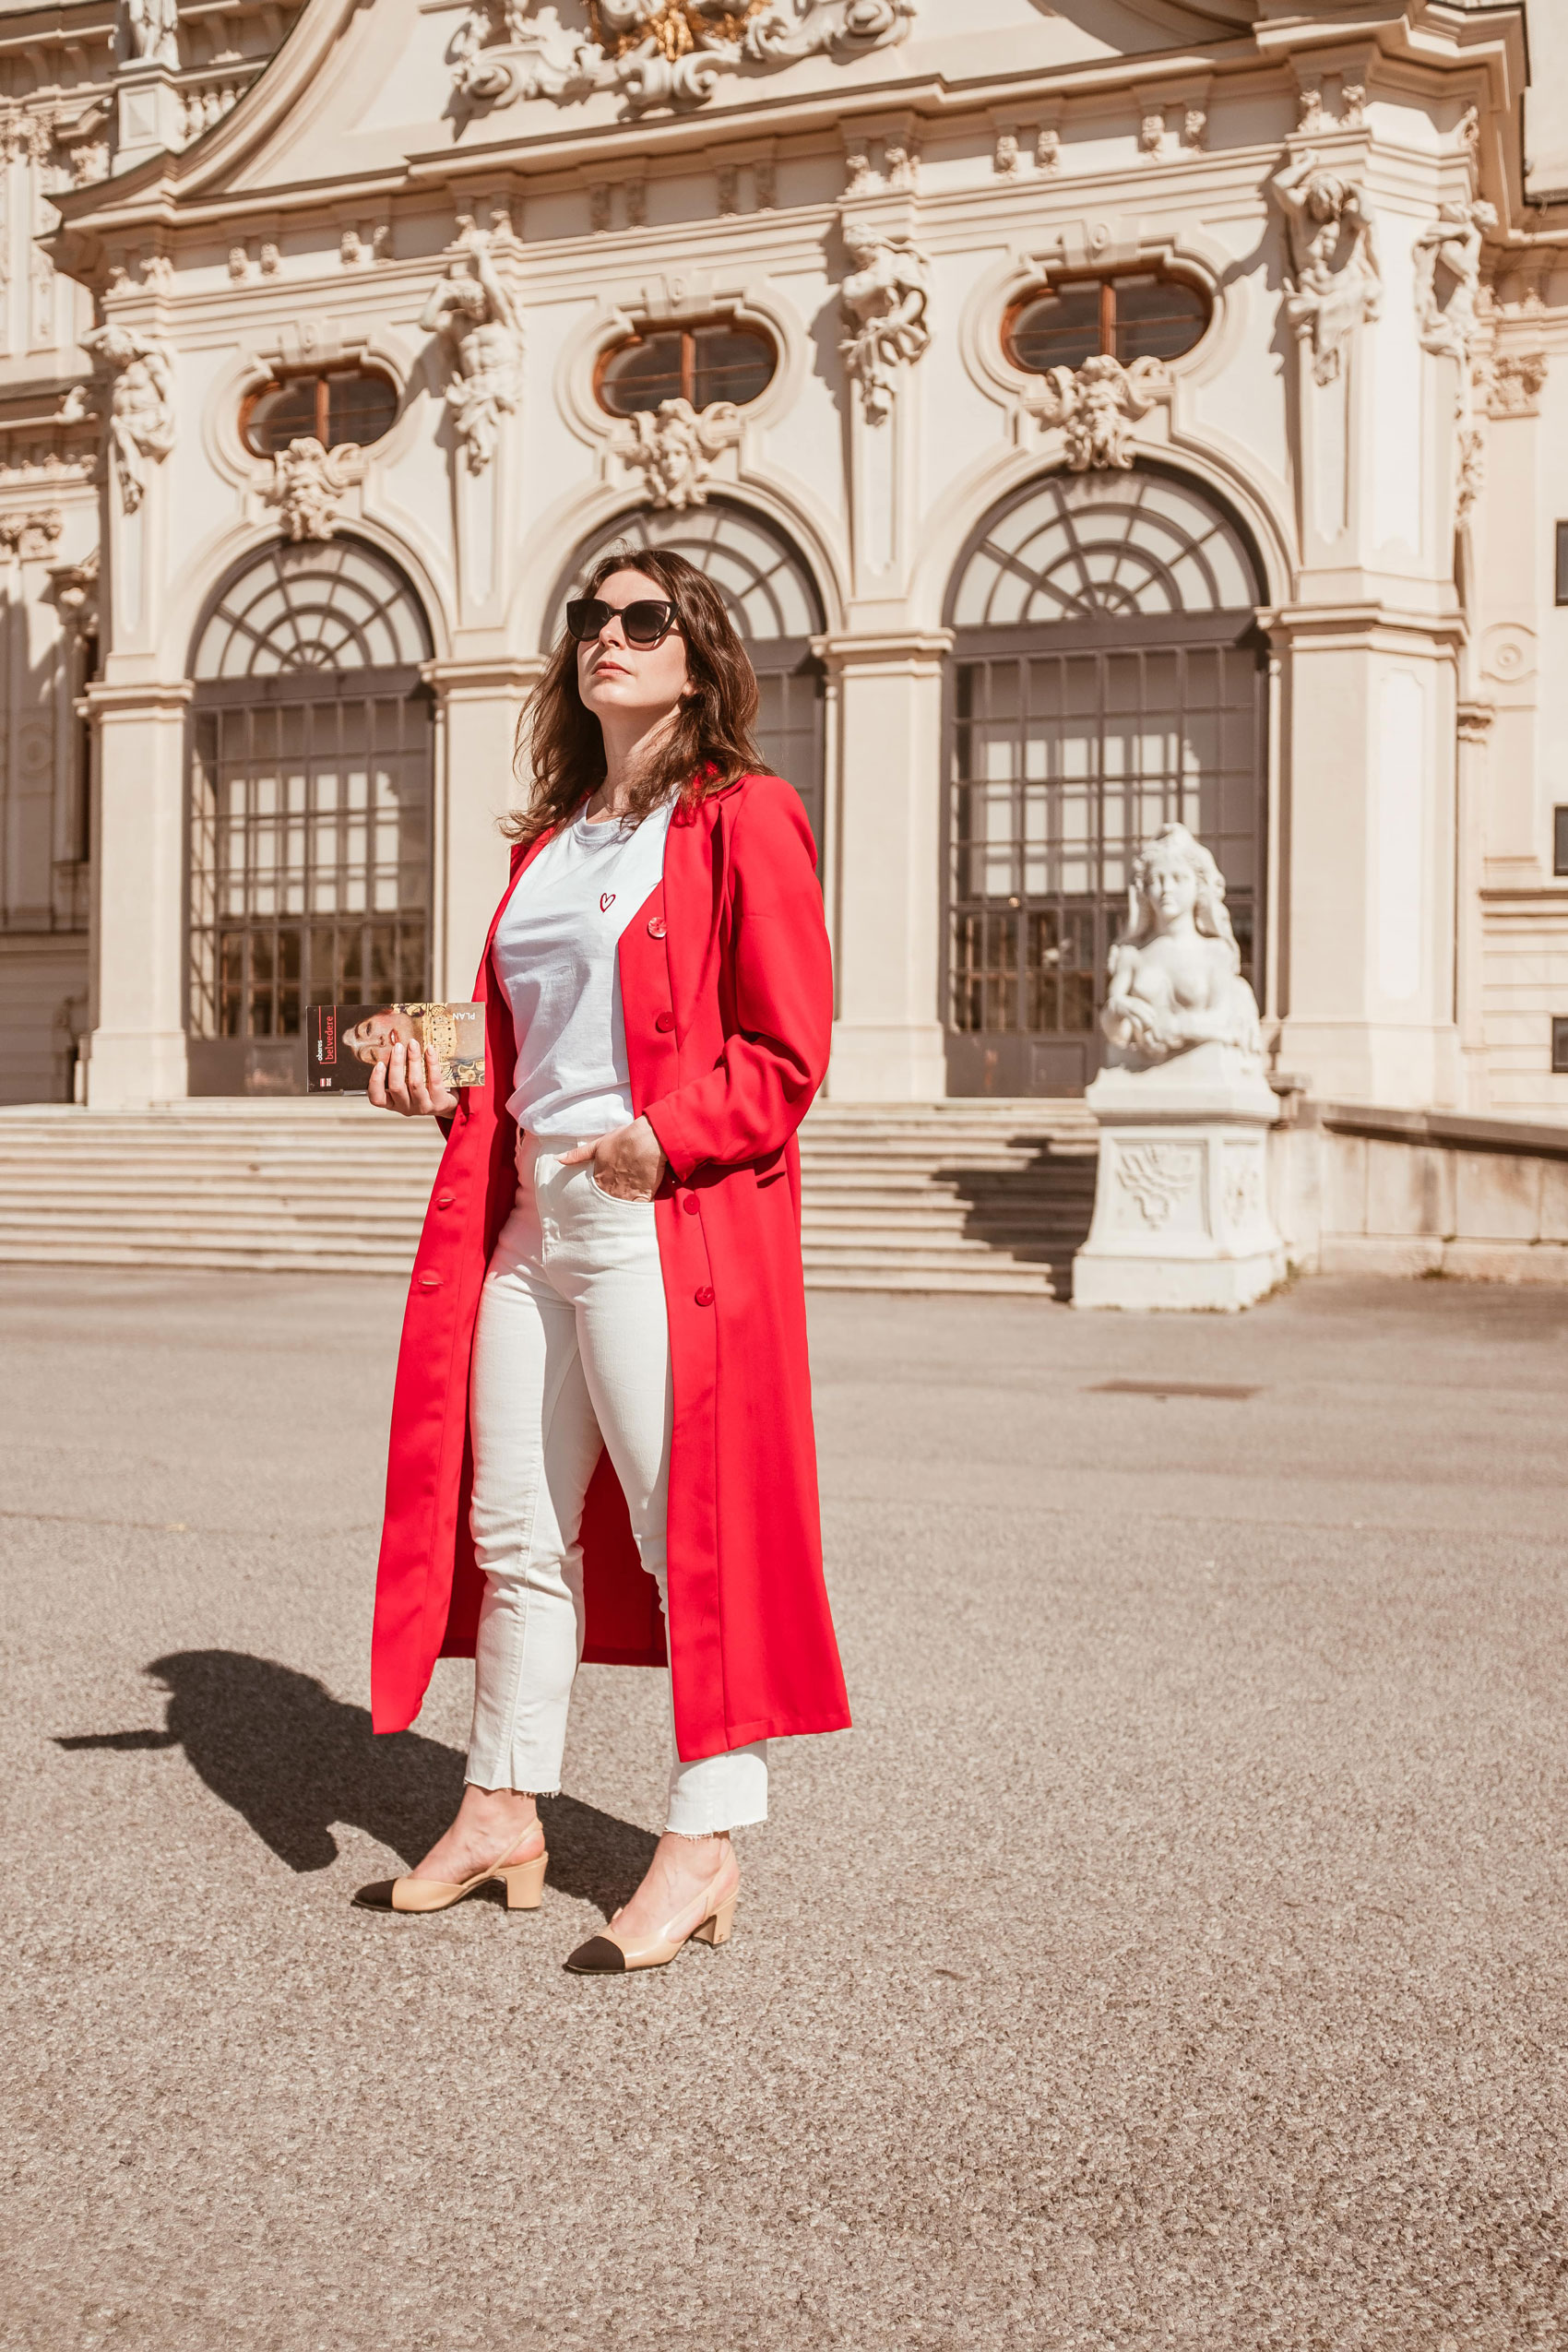 white outfit with a long coat trench by Sienna Inspo and Chanel Slingback by Arara Pintada